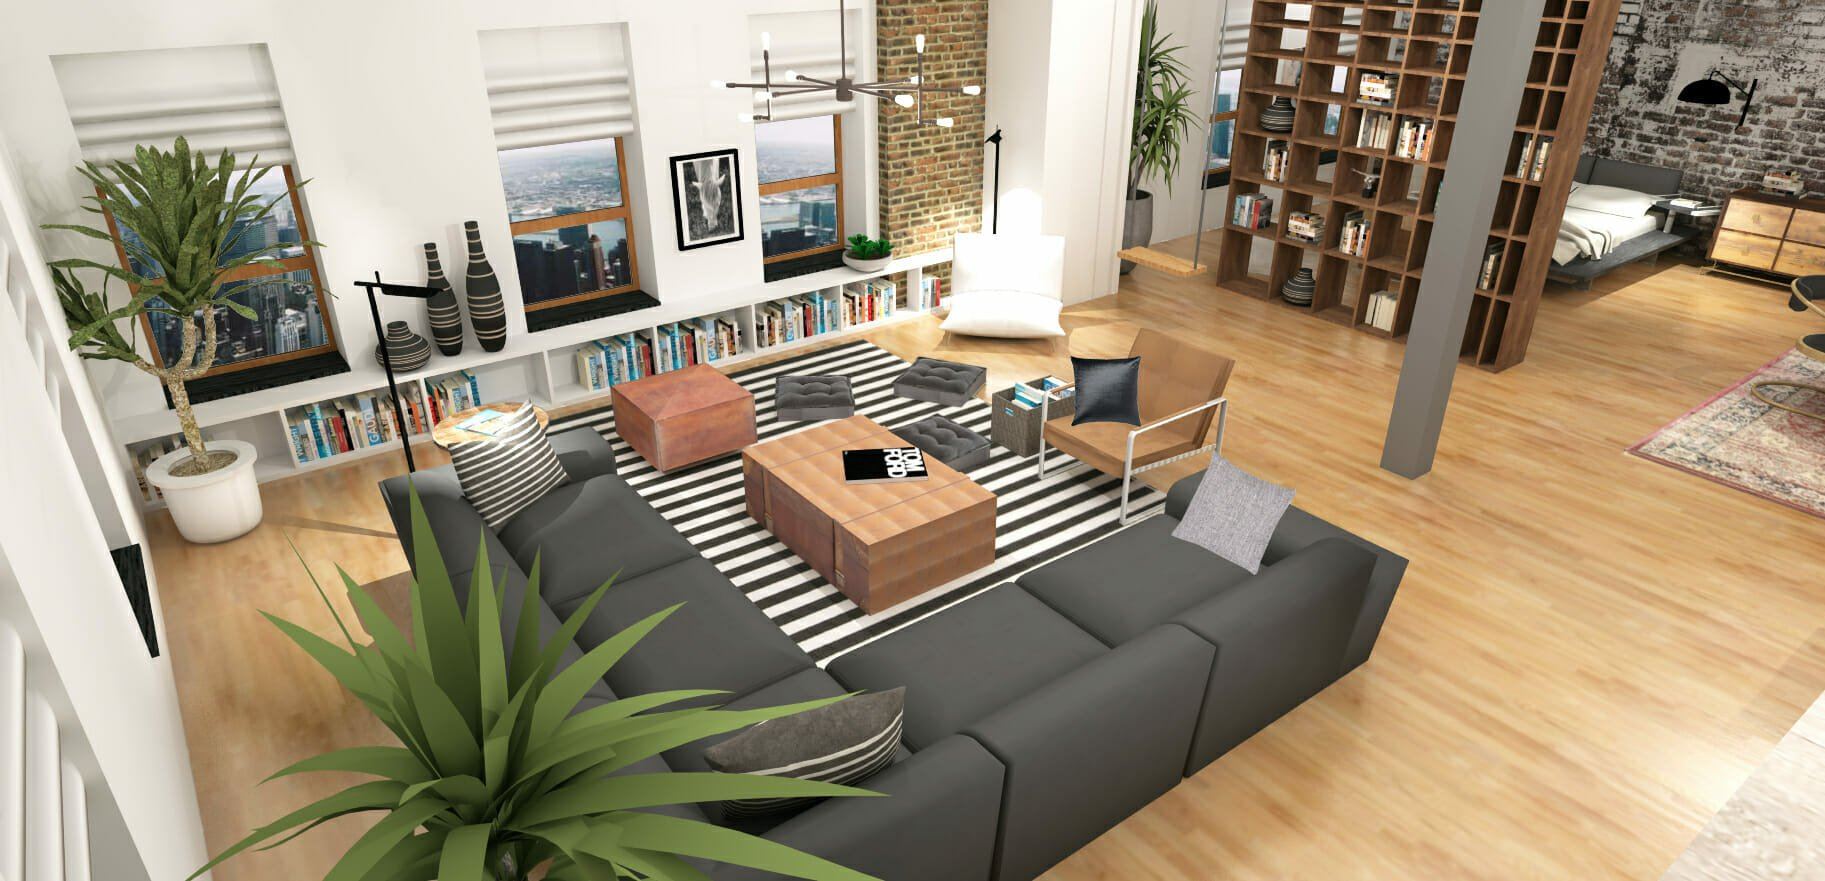 Studio Apartment Layout Ideas Your Ultimate Guide To Efficiency,Chinese Dessert Soup Recipes